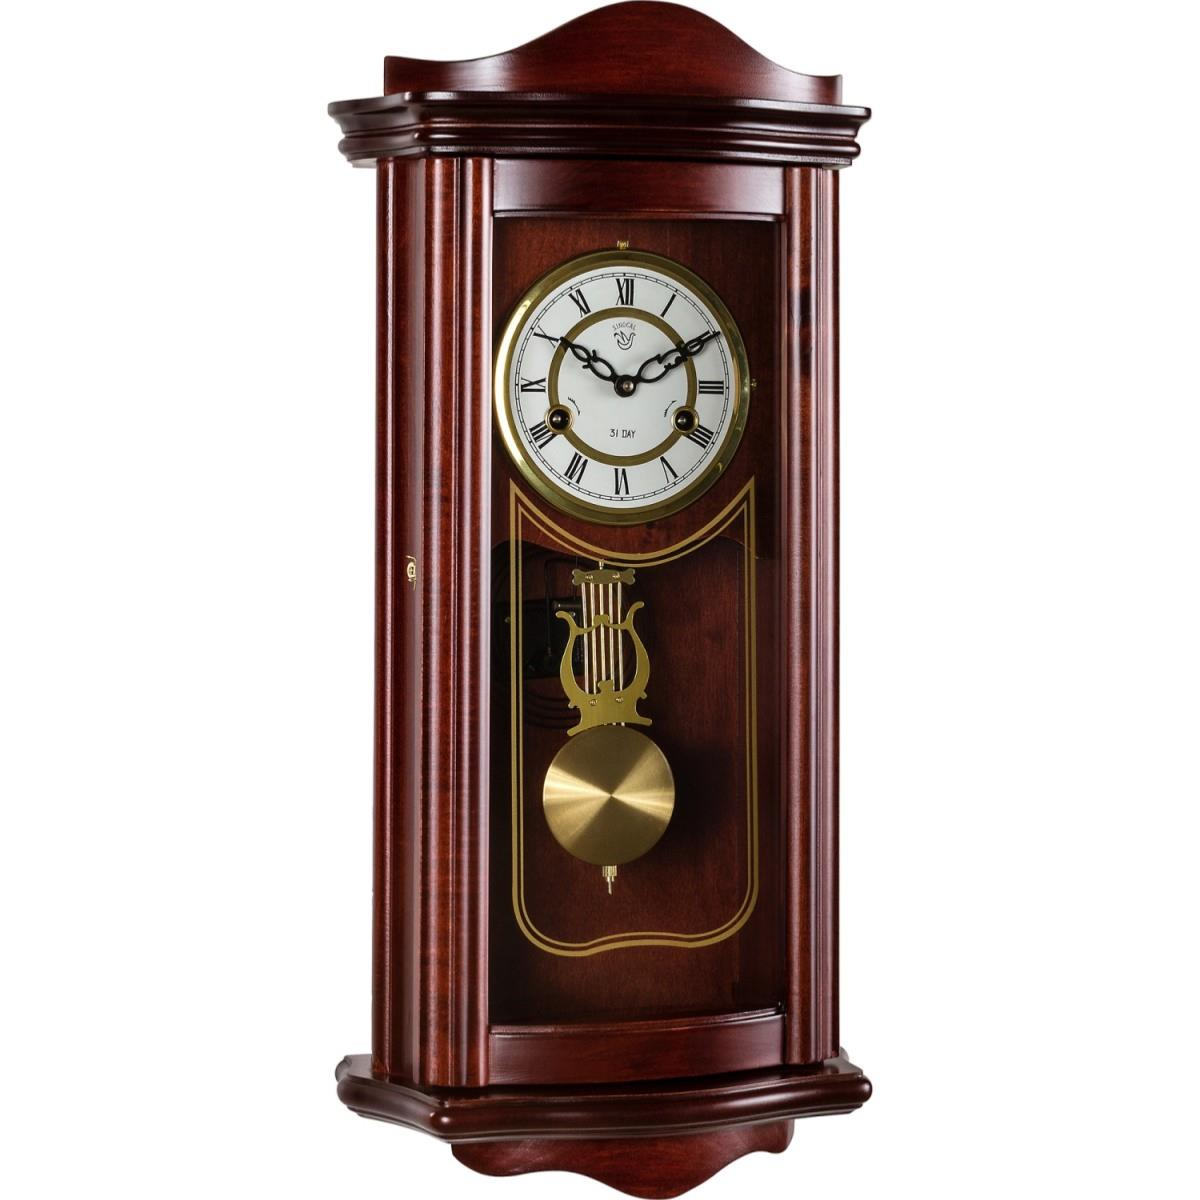 horloge pendule murale 63 cm style ancien acajou. Black Bedroom Furniture Sets. Home Design Ideas